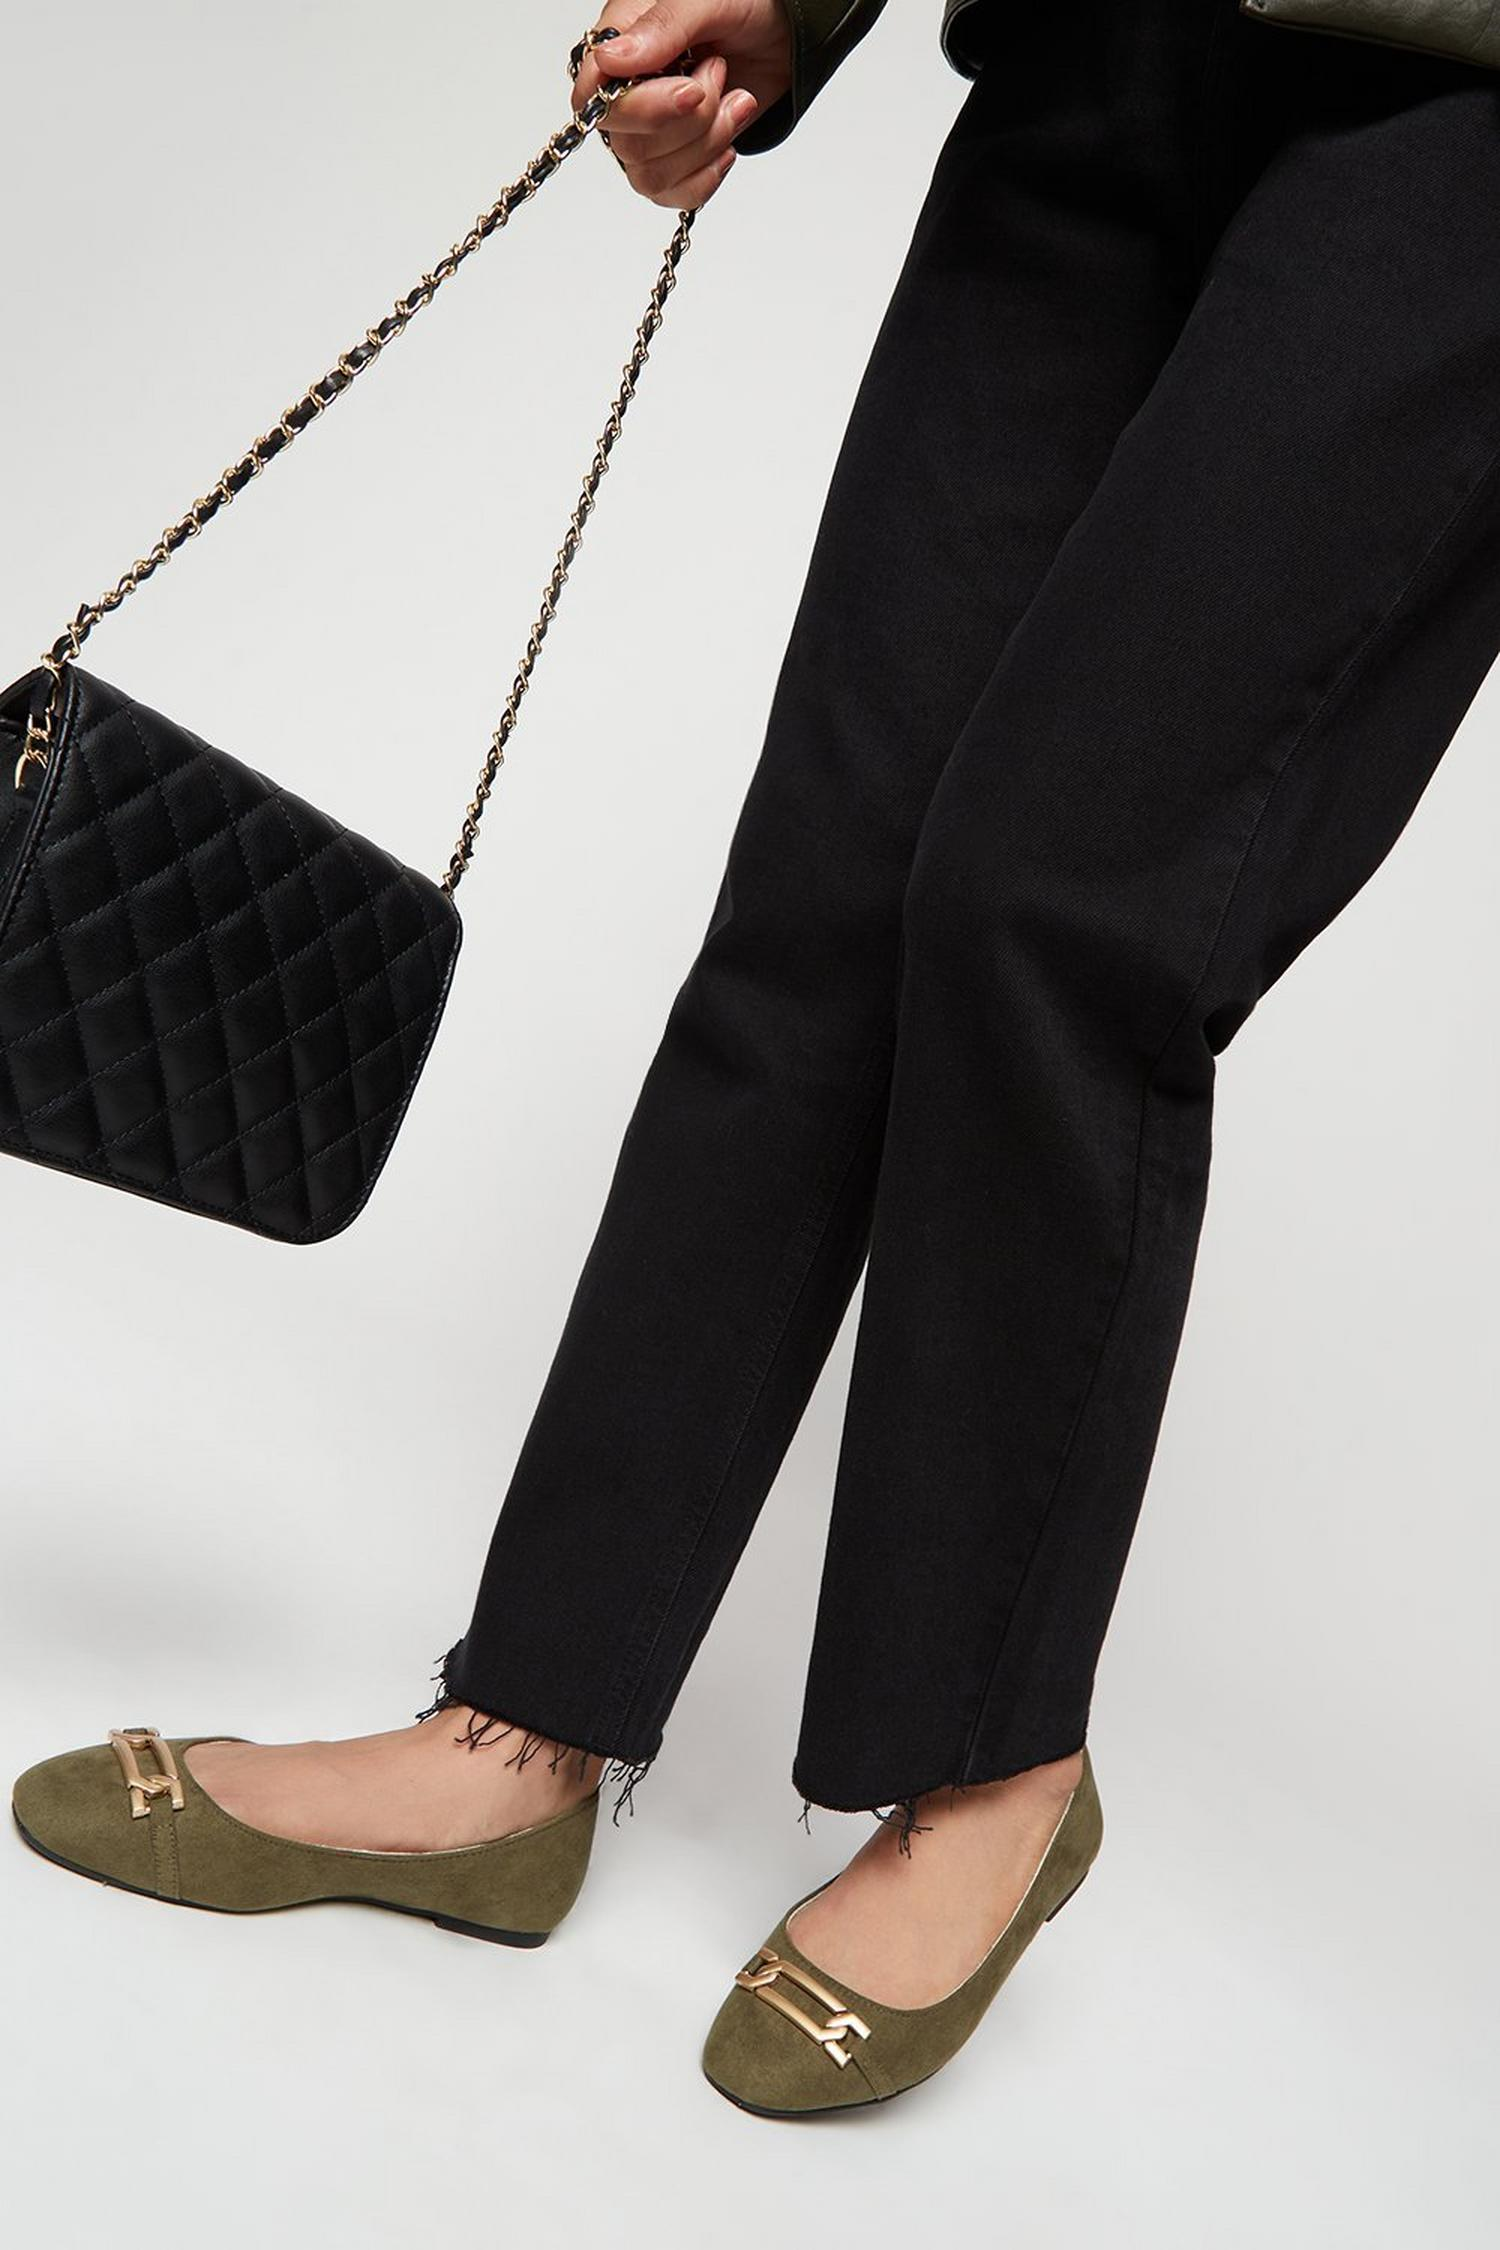 511 Wide Fit Olive Pinch Pumps image number 2